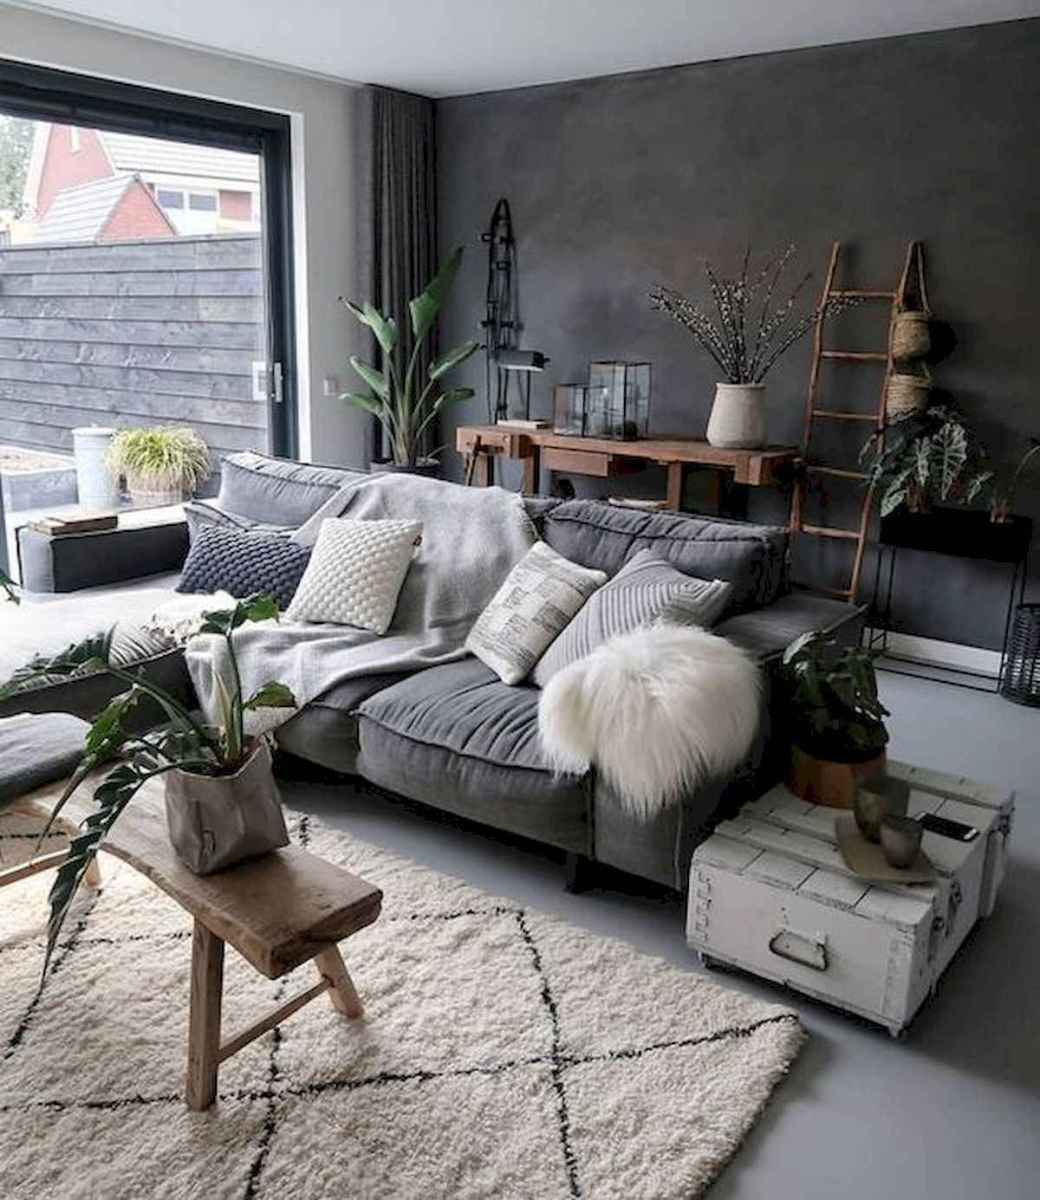 70 Stunning Grey White Black Living Room Decor Ideas And Remodel (32)